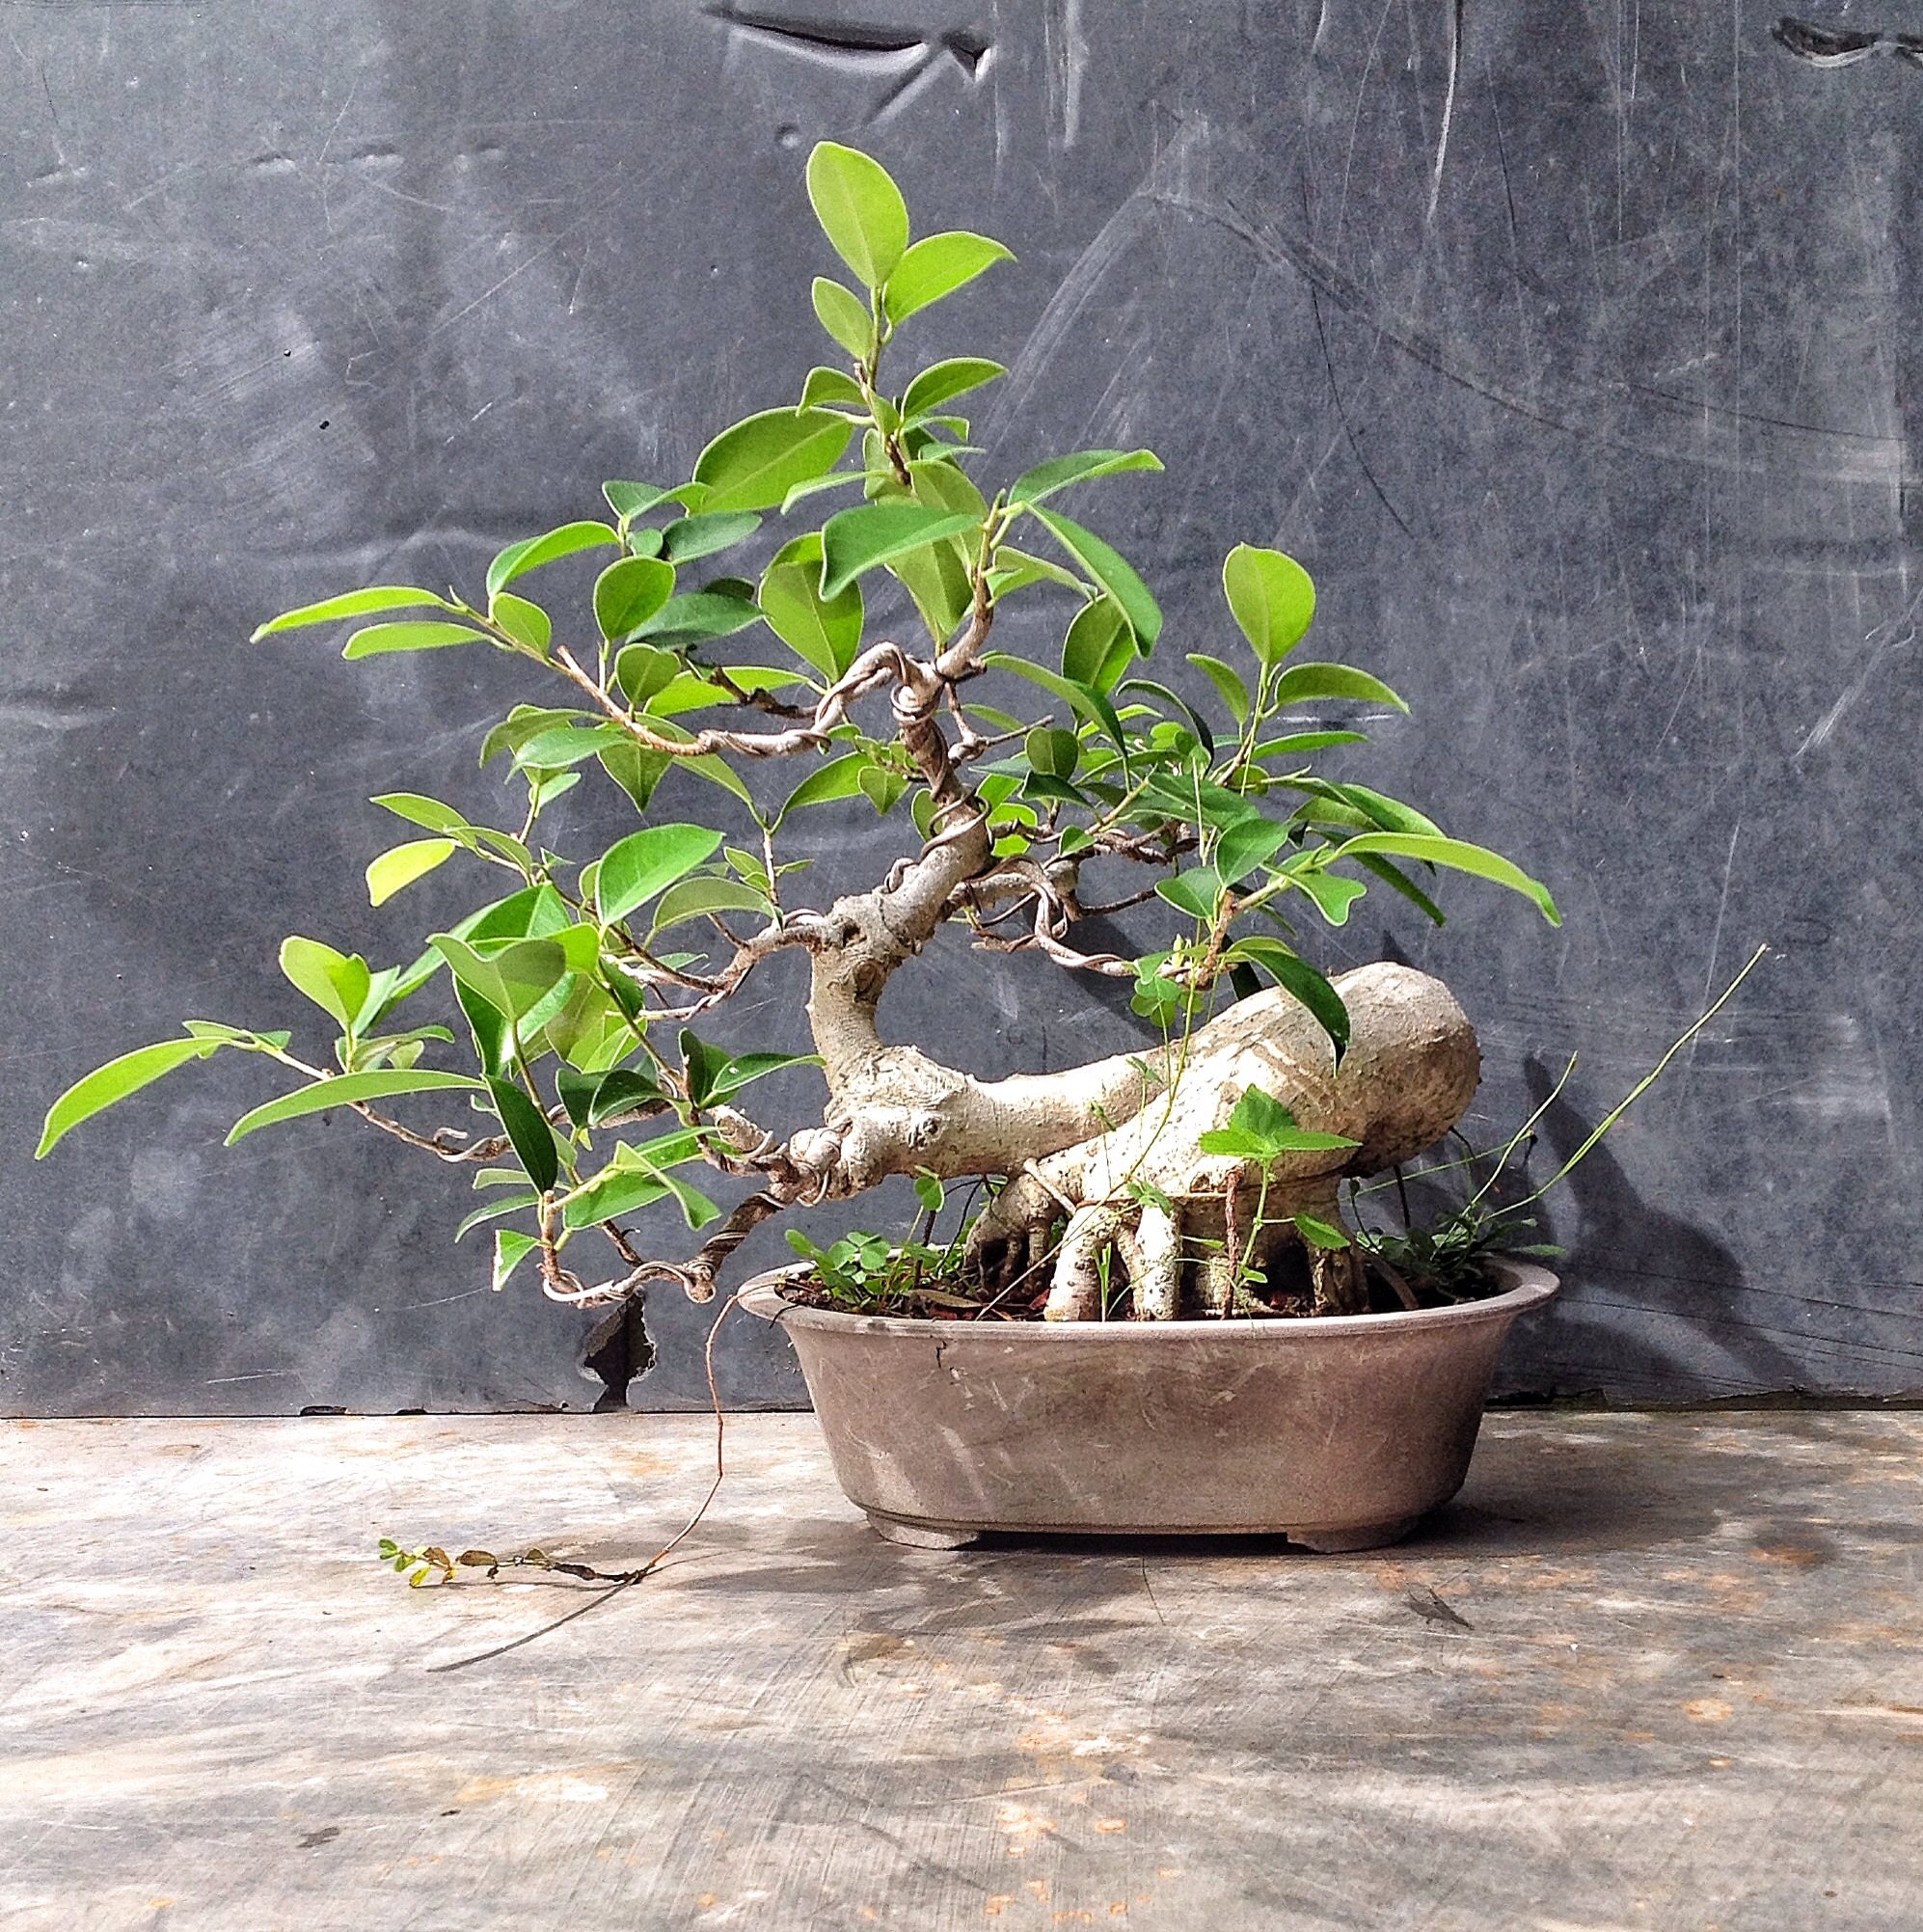 Dare I Call It A Ginseng Ficus What Does That Mean Anyway Adam S Art And Bonsai Blog